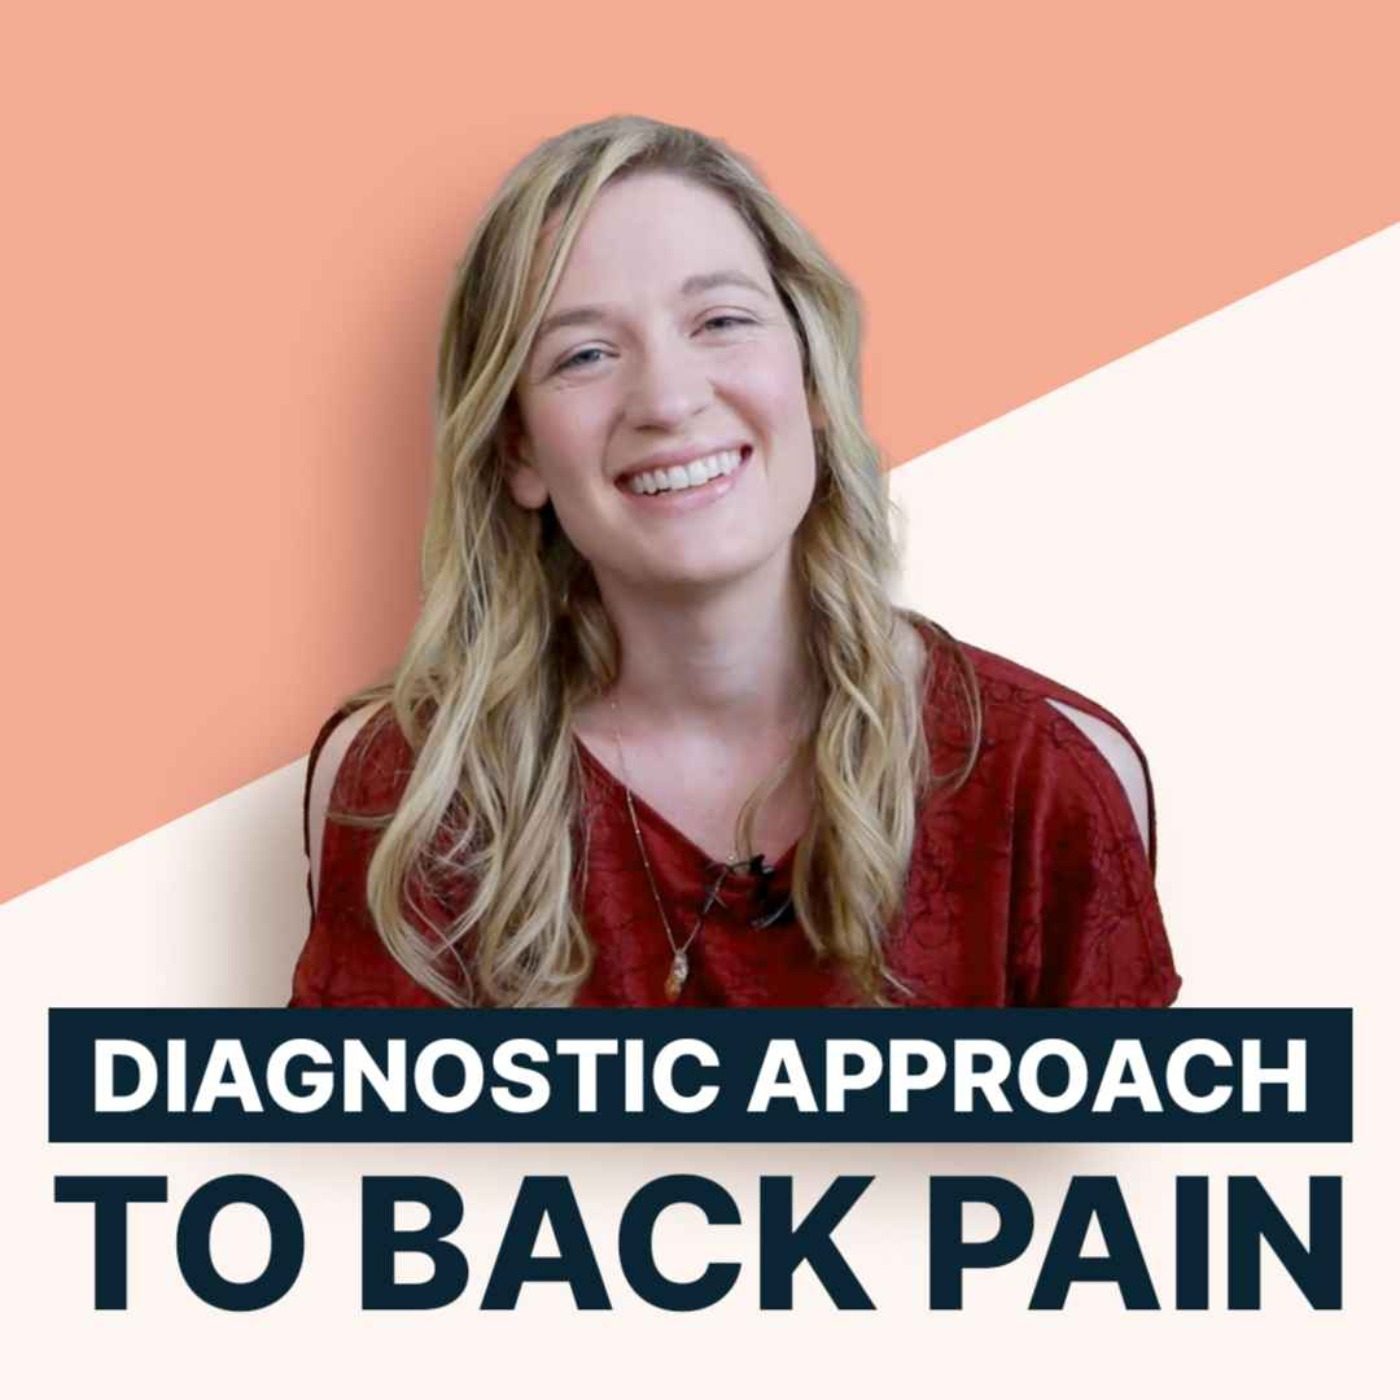 Diagnostic approach to back pain